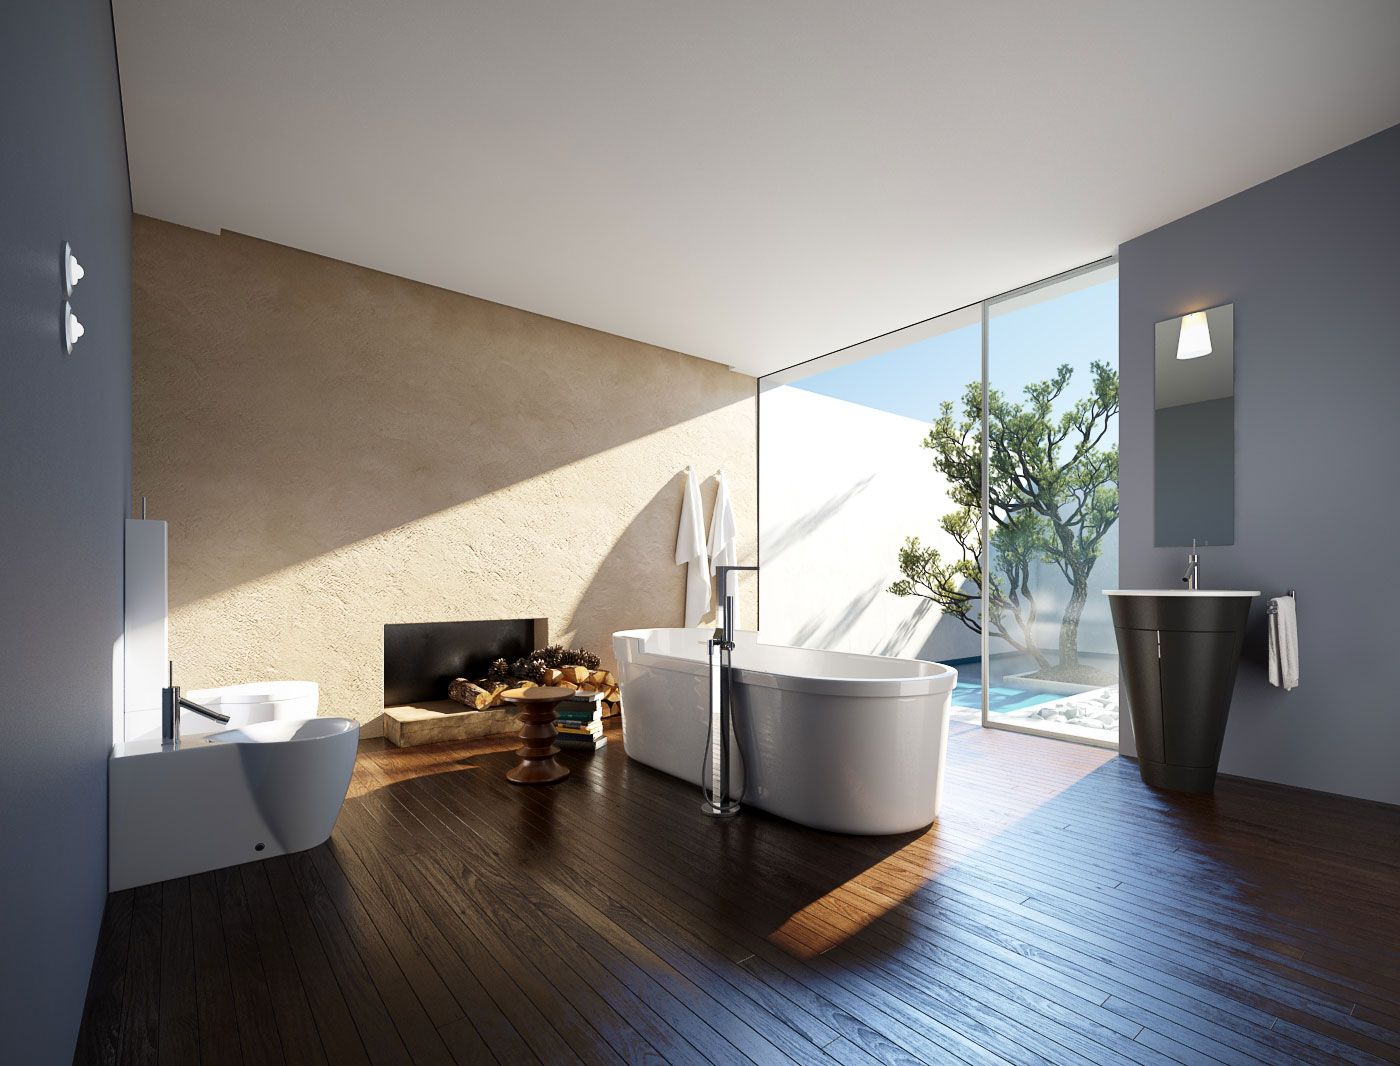 Archinteriors Vol. 39 Includes 10 Fully Textured Scenes Of Modern  Bathrooms. Every Scene Is Ready To Render With Professional Shaders And  Lighting.